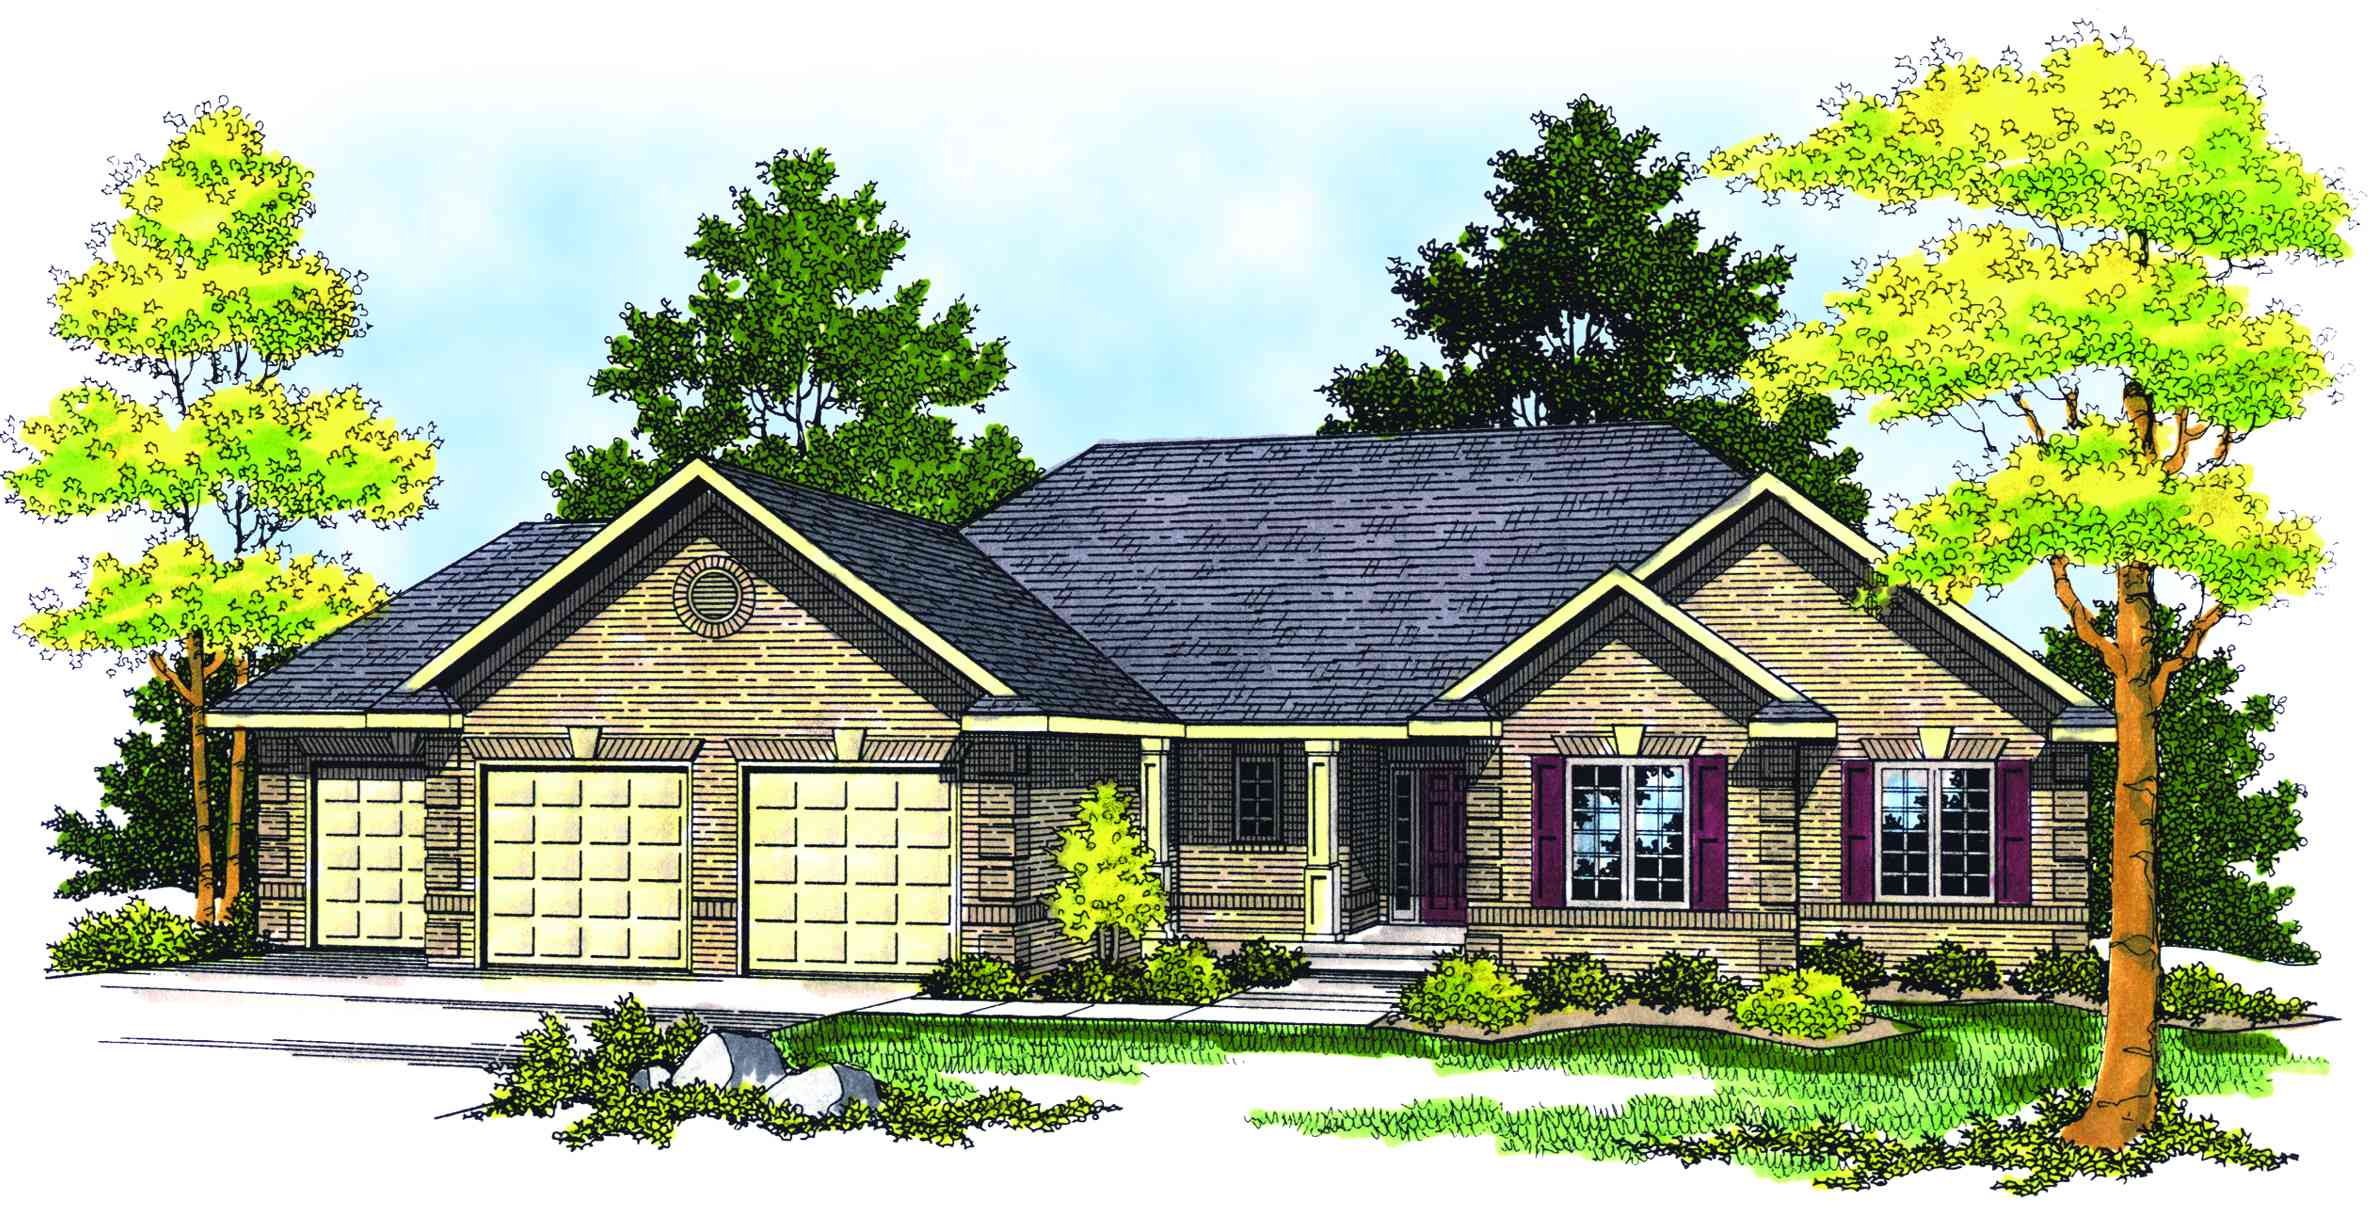 Traditional ranch style home plan 89130ah for Design traditions home plans